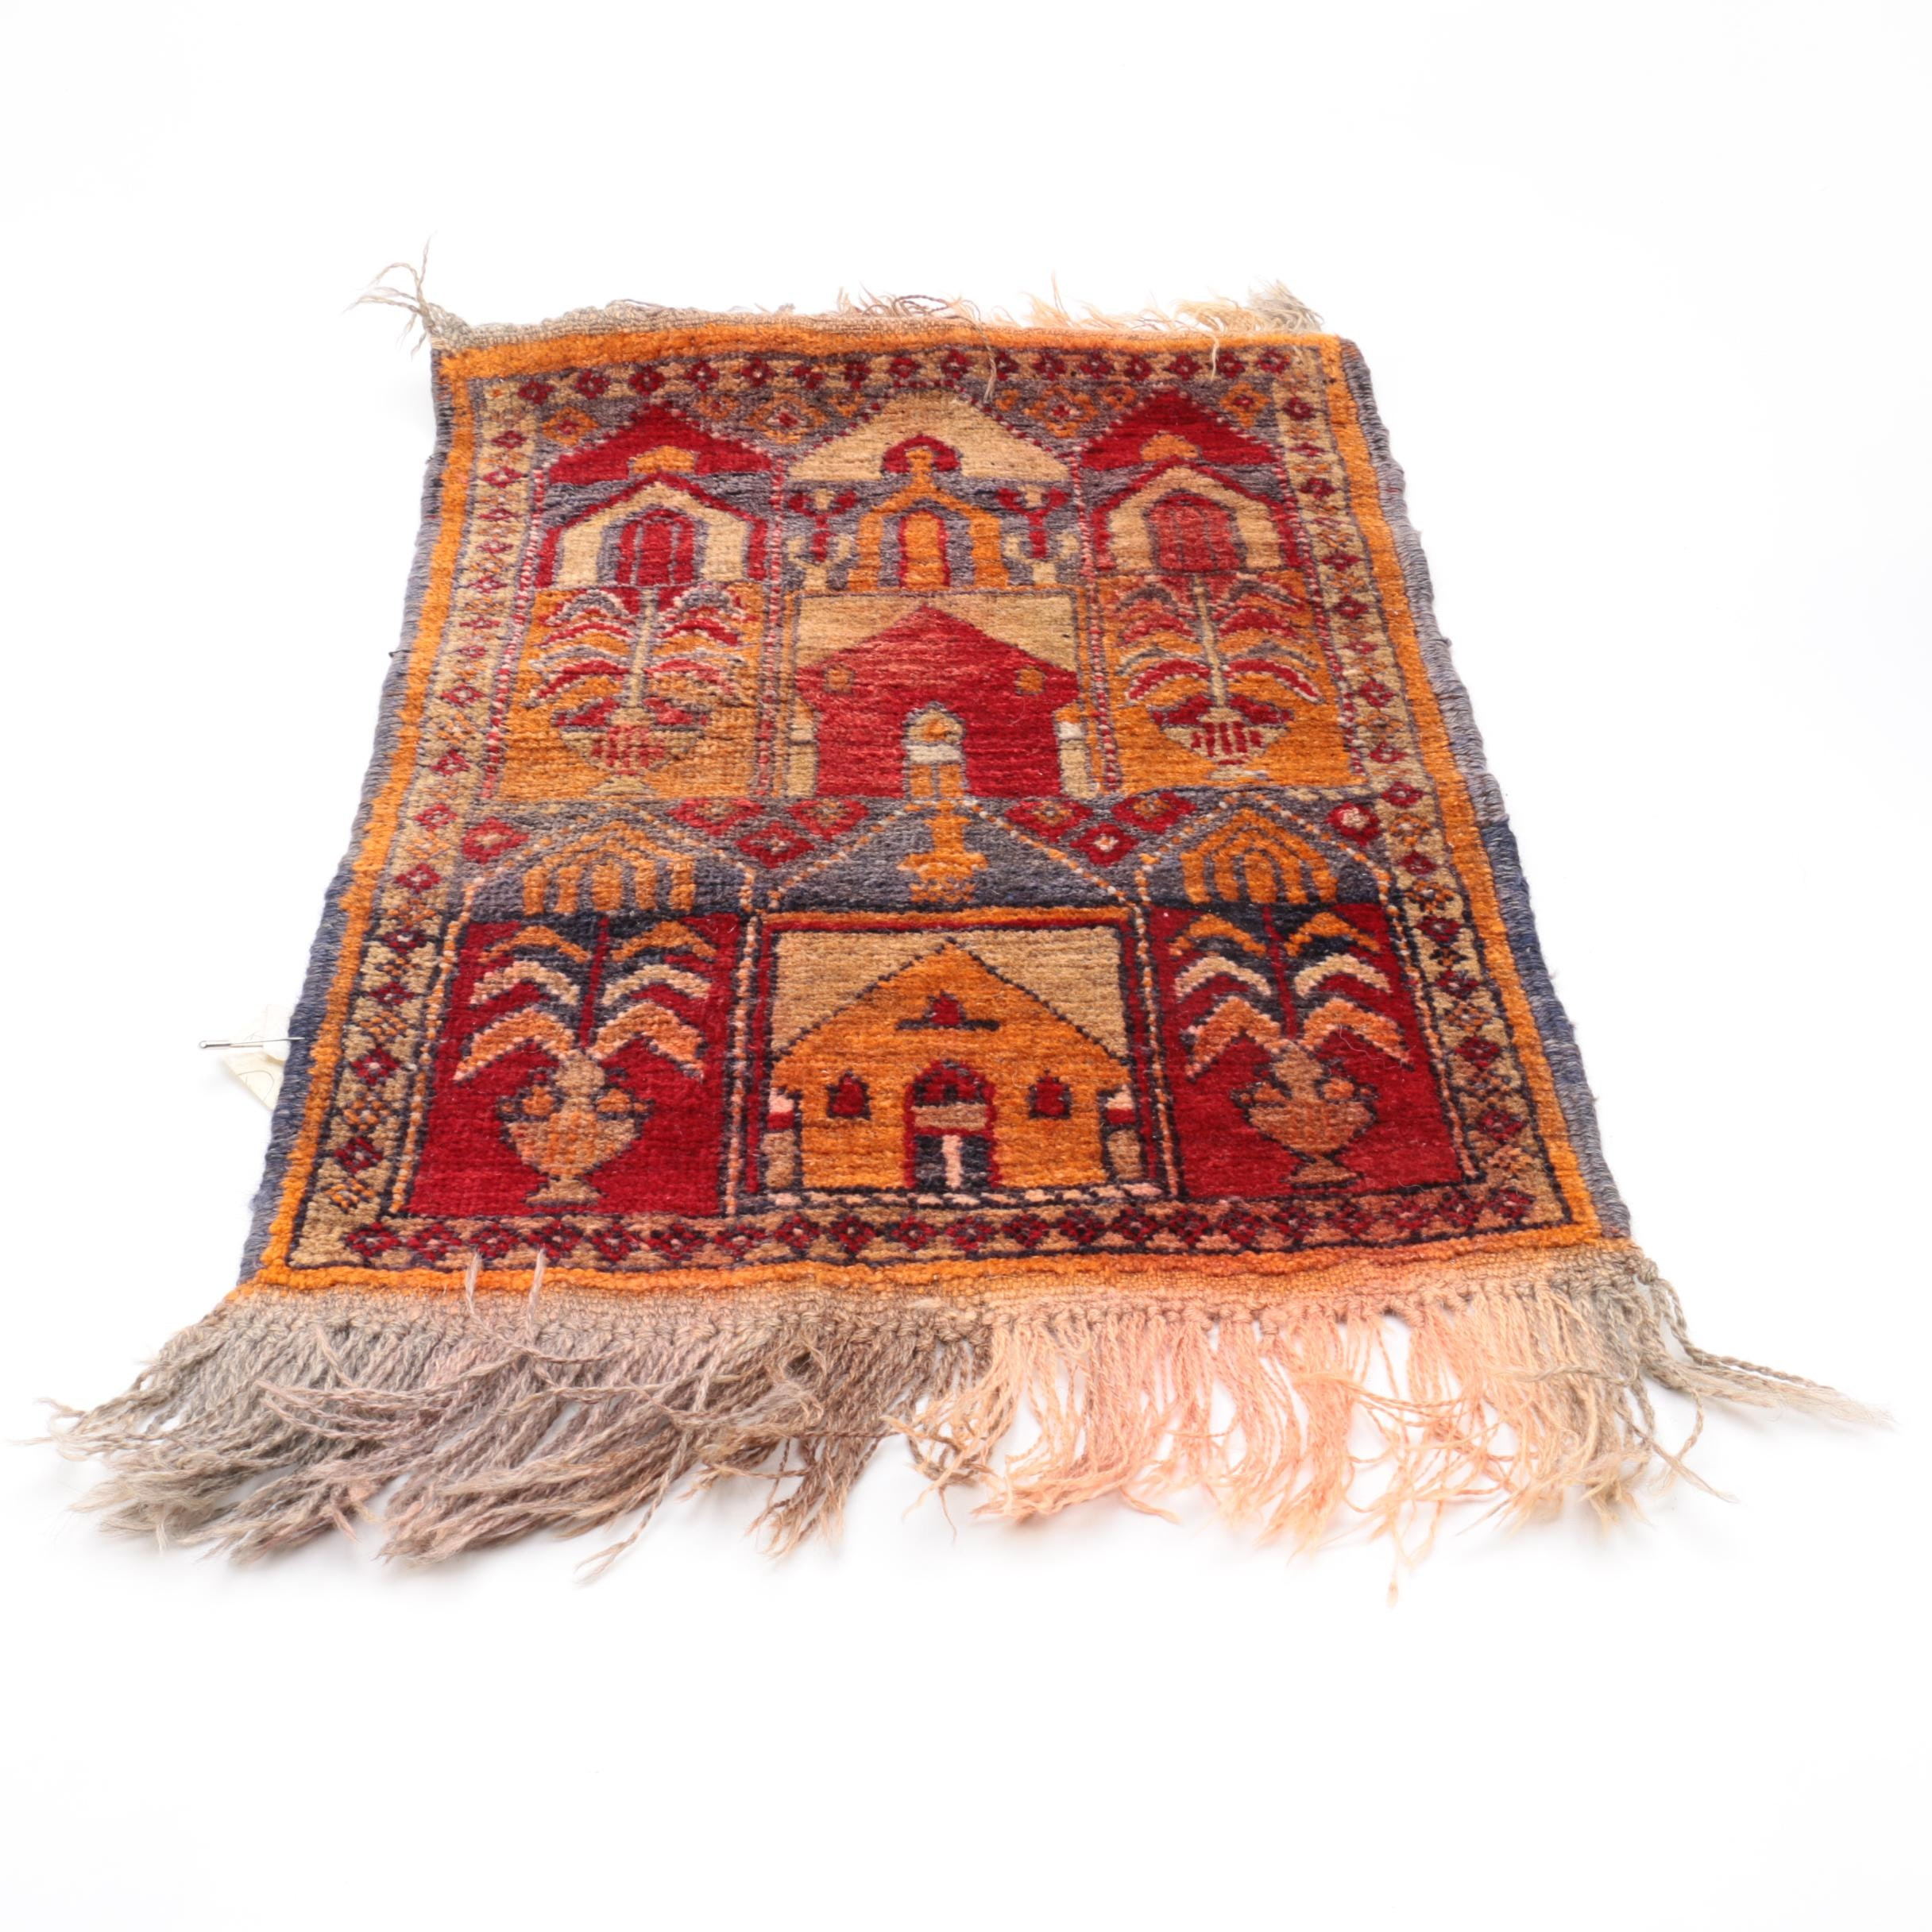 Hand-Knotted Anatolian Goat Hair Prayer Rug